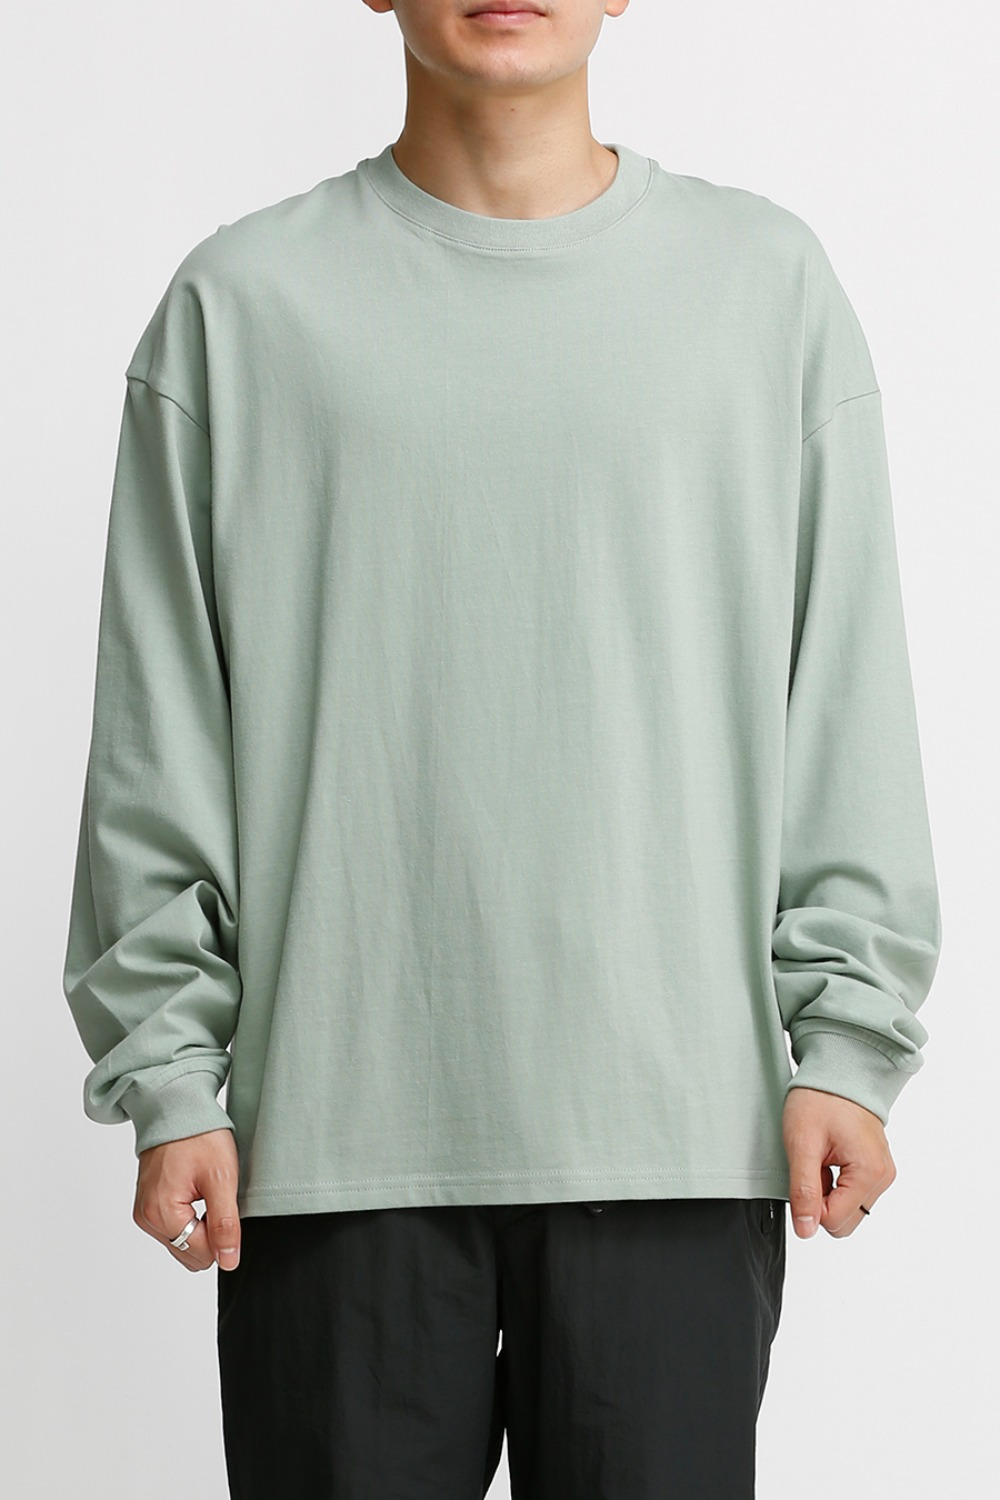 LOGO LABEL LONG SLEEVES / PALE MINT